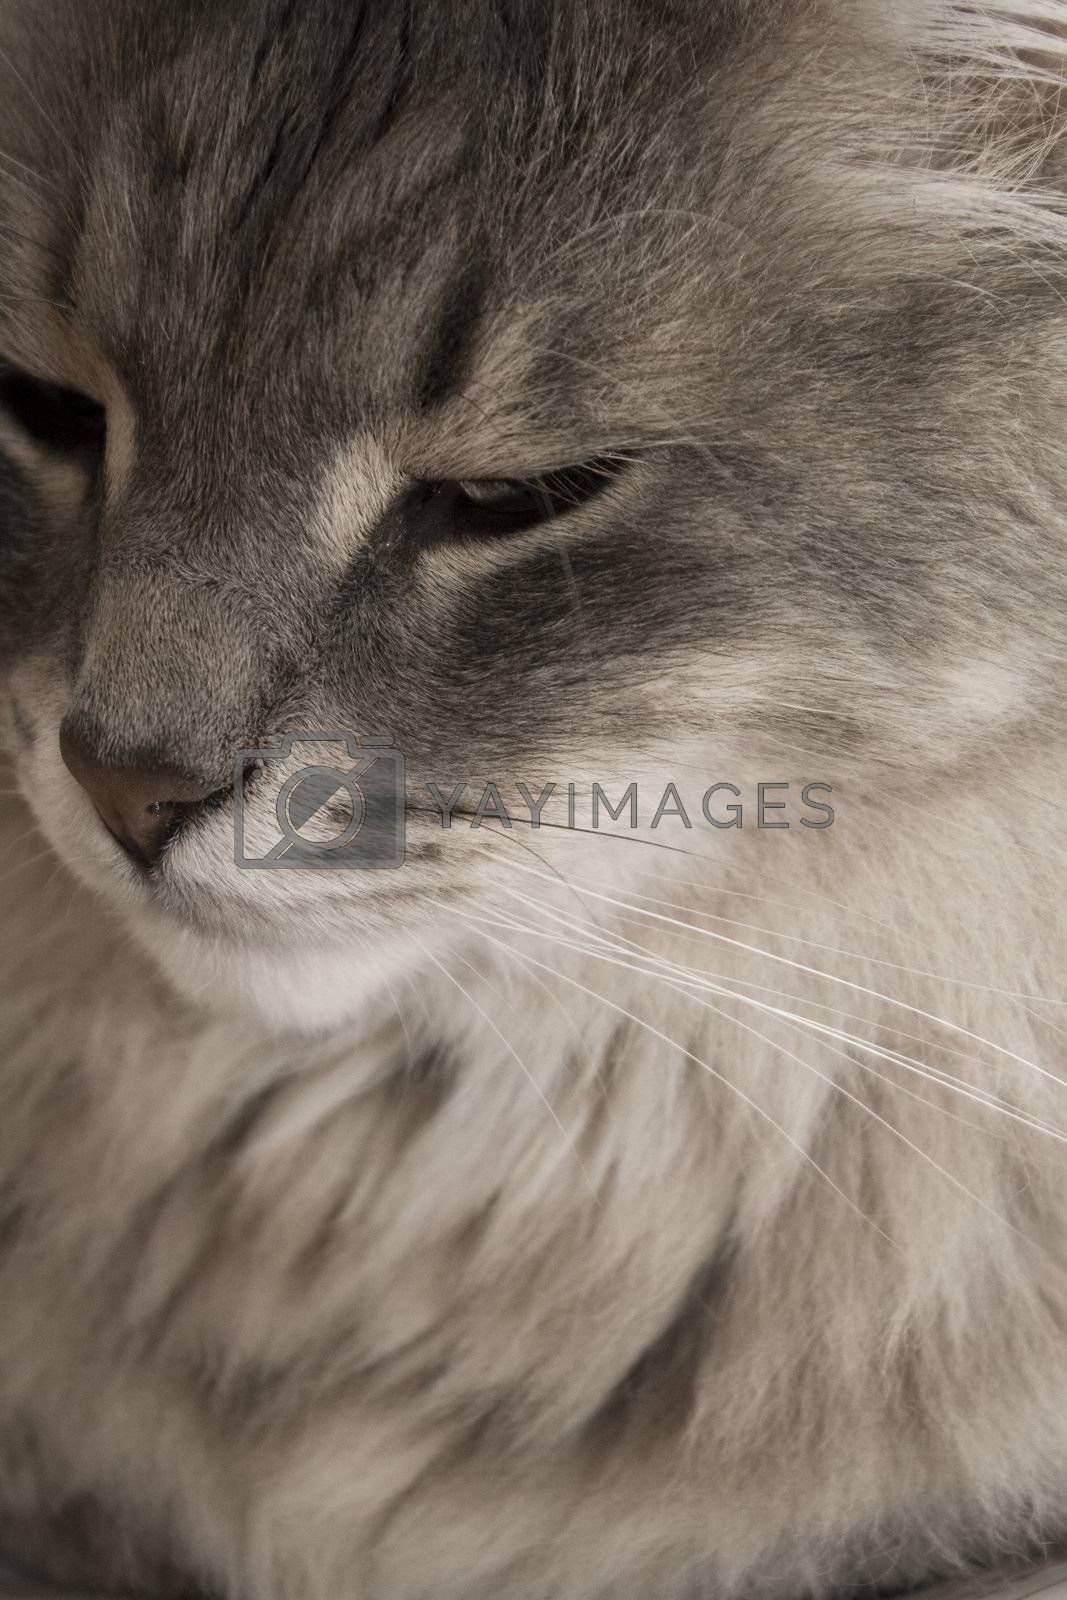 close up of a long hair cat